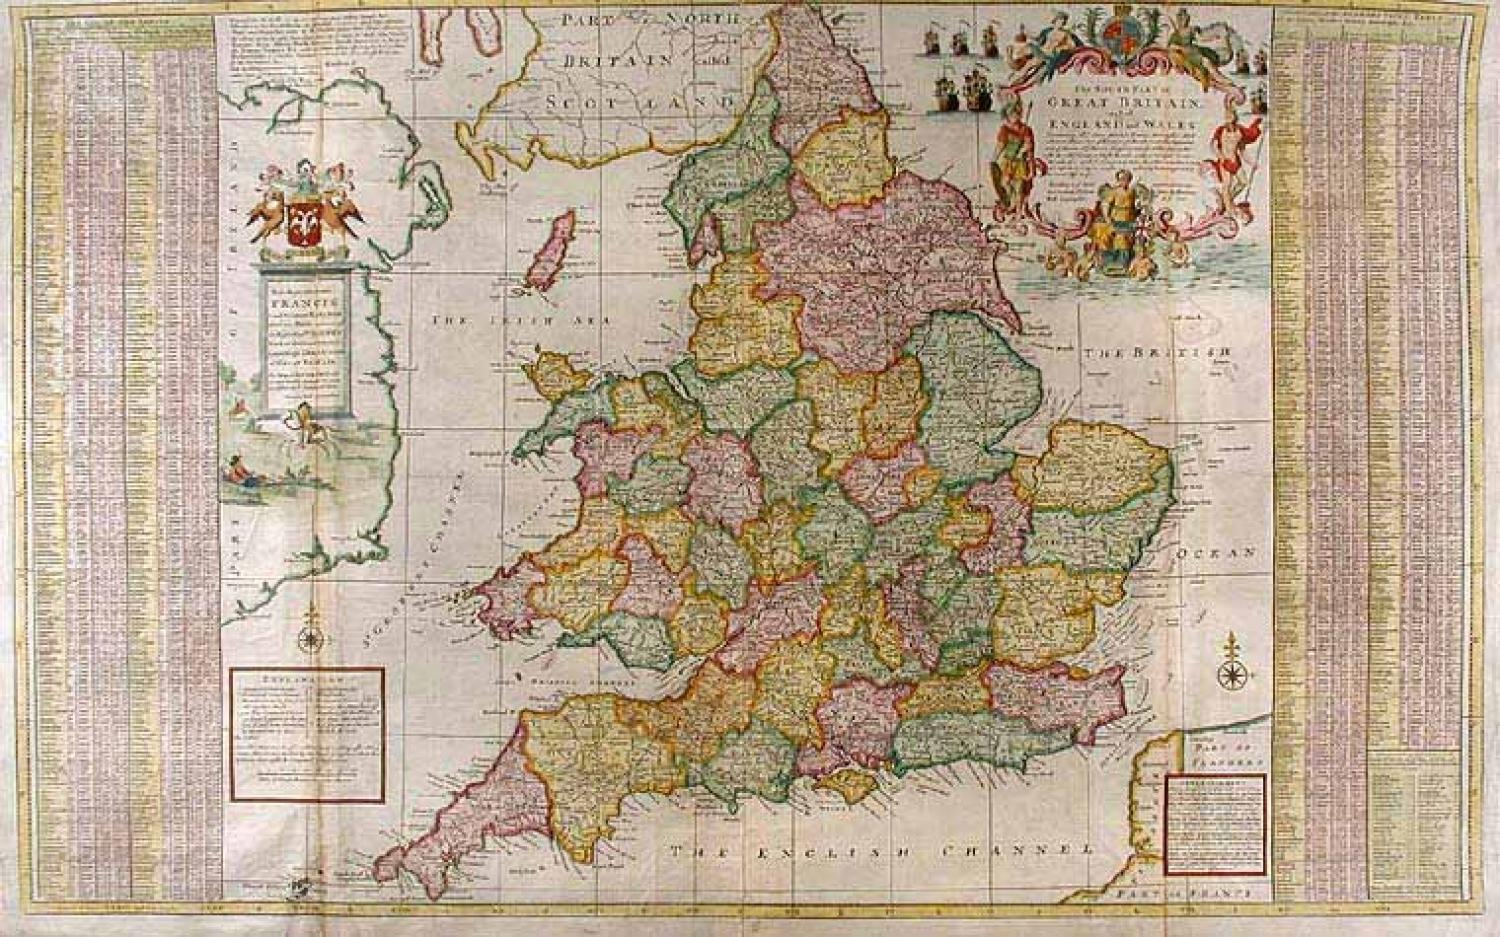 SOLD The South Part of Great Britain called England and Wales...